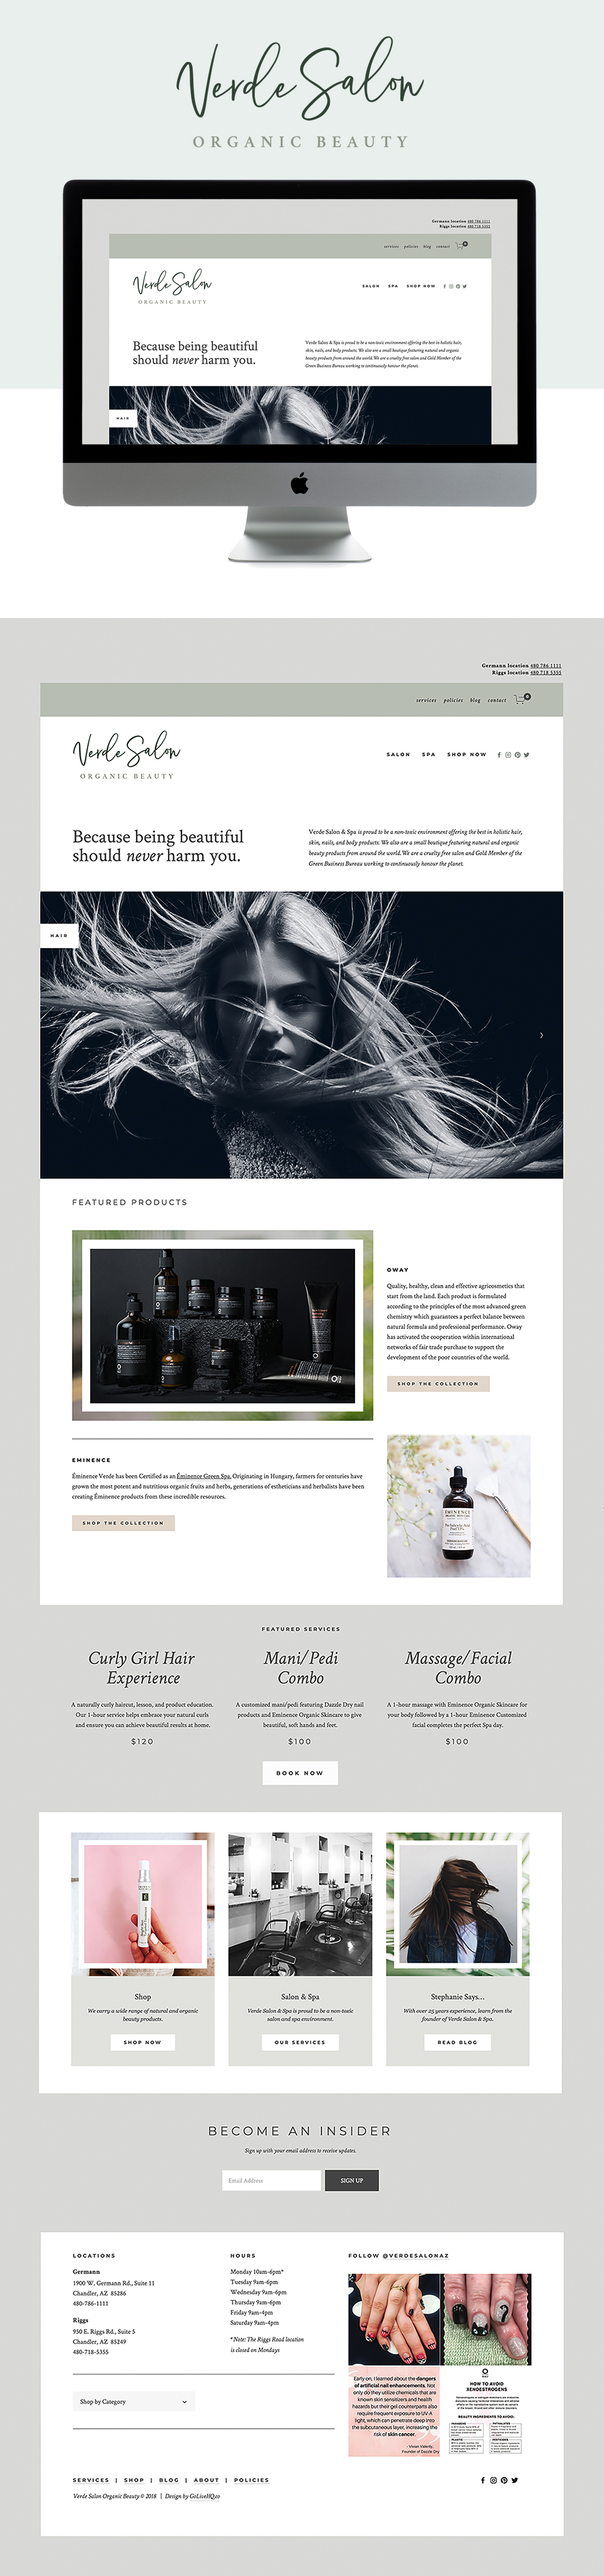 Clean, Simple, and Chic Website for Organic Salon & Spa | Go Live HQ